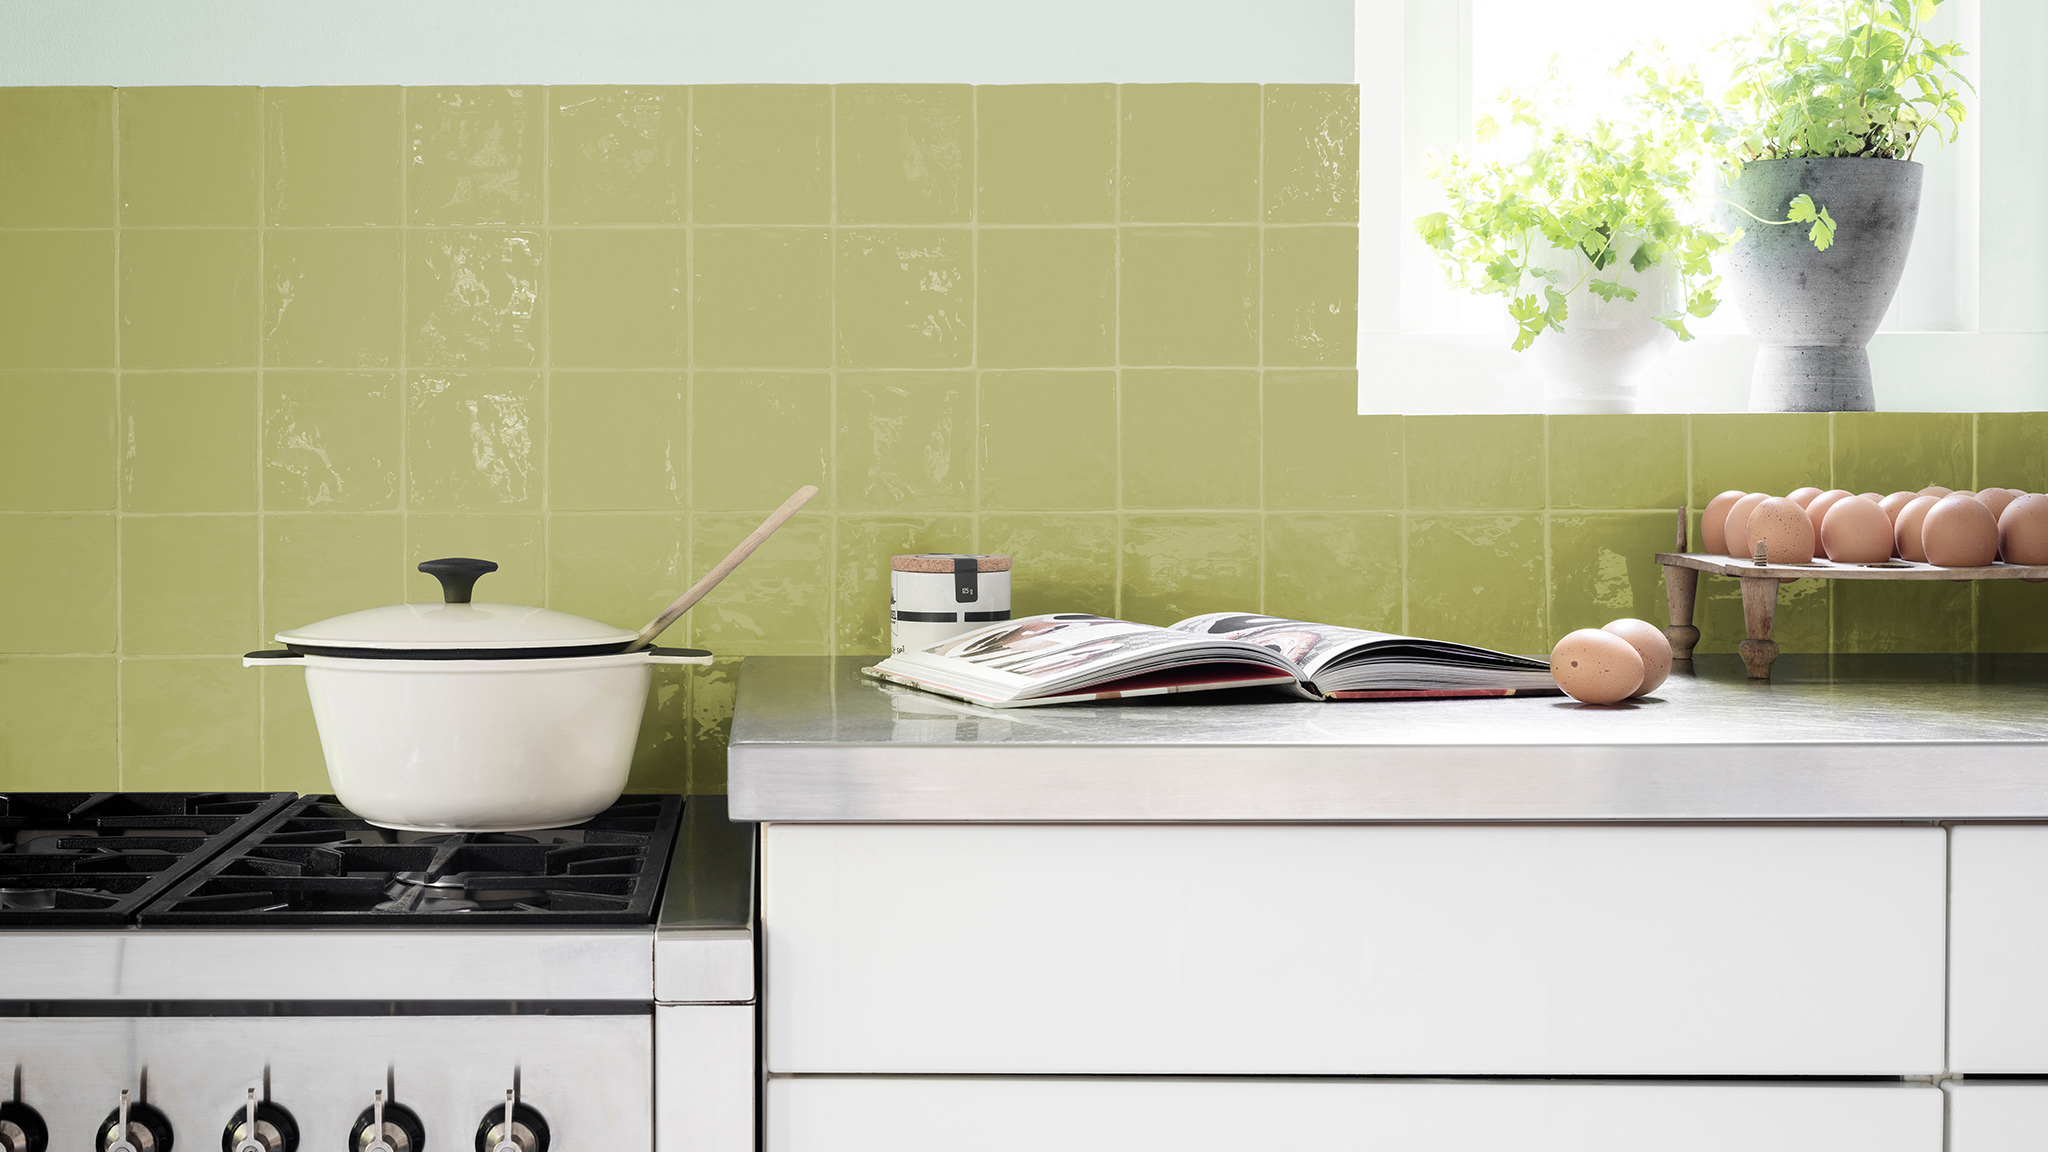 dulux-simply-refresh-tiles-ideas-global-3